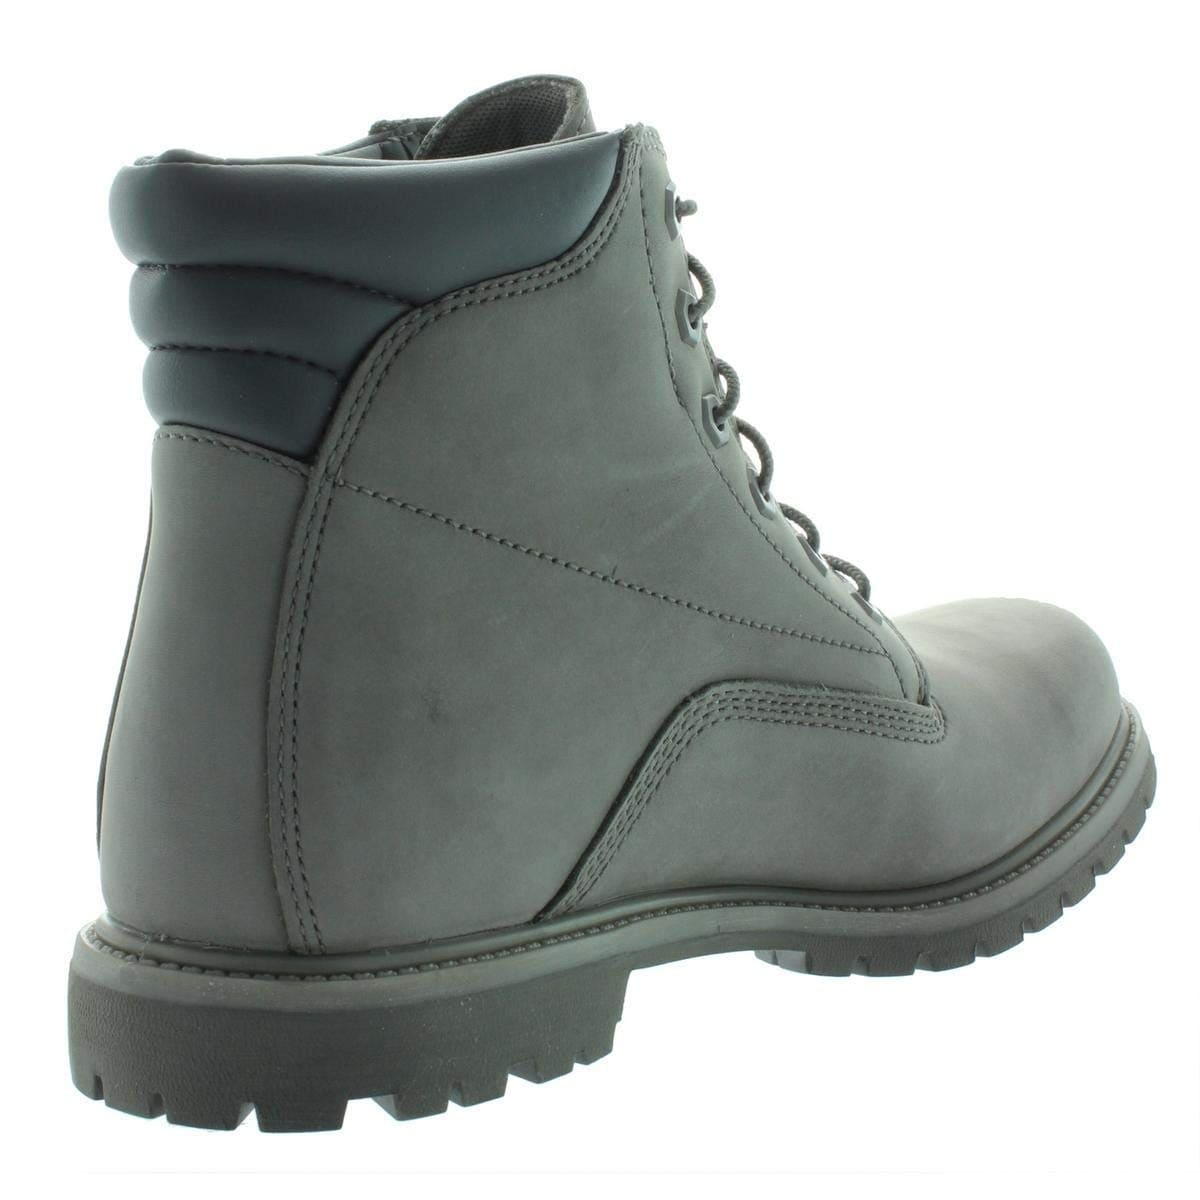 318f81b4875 Shop Timberland Womens Femmes Closed Toe Ankle Working Boots - Free  Shipping Today - Overstock - 25587872